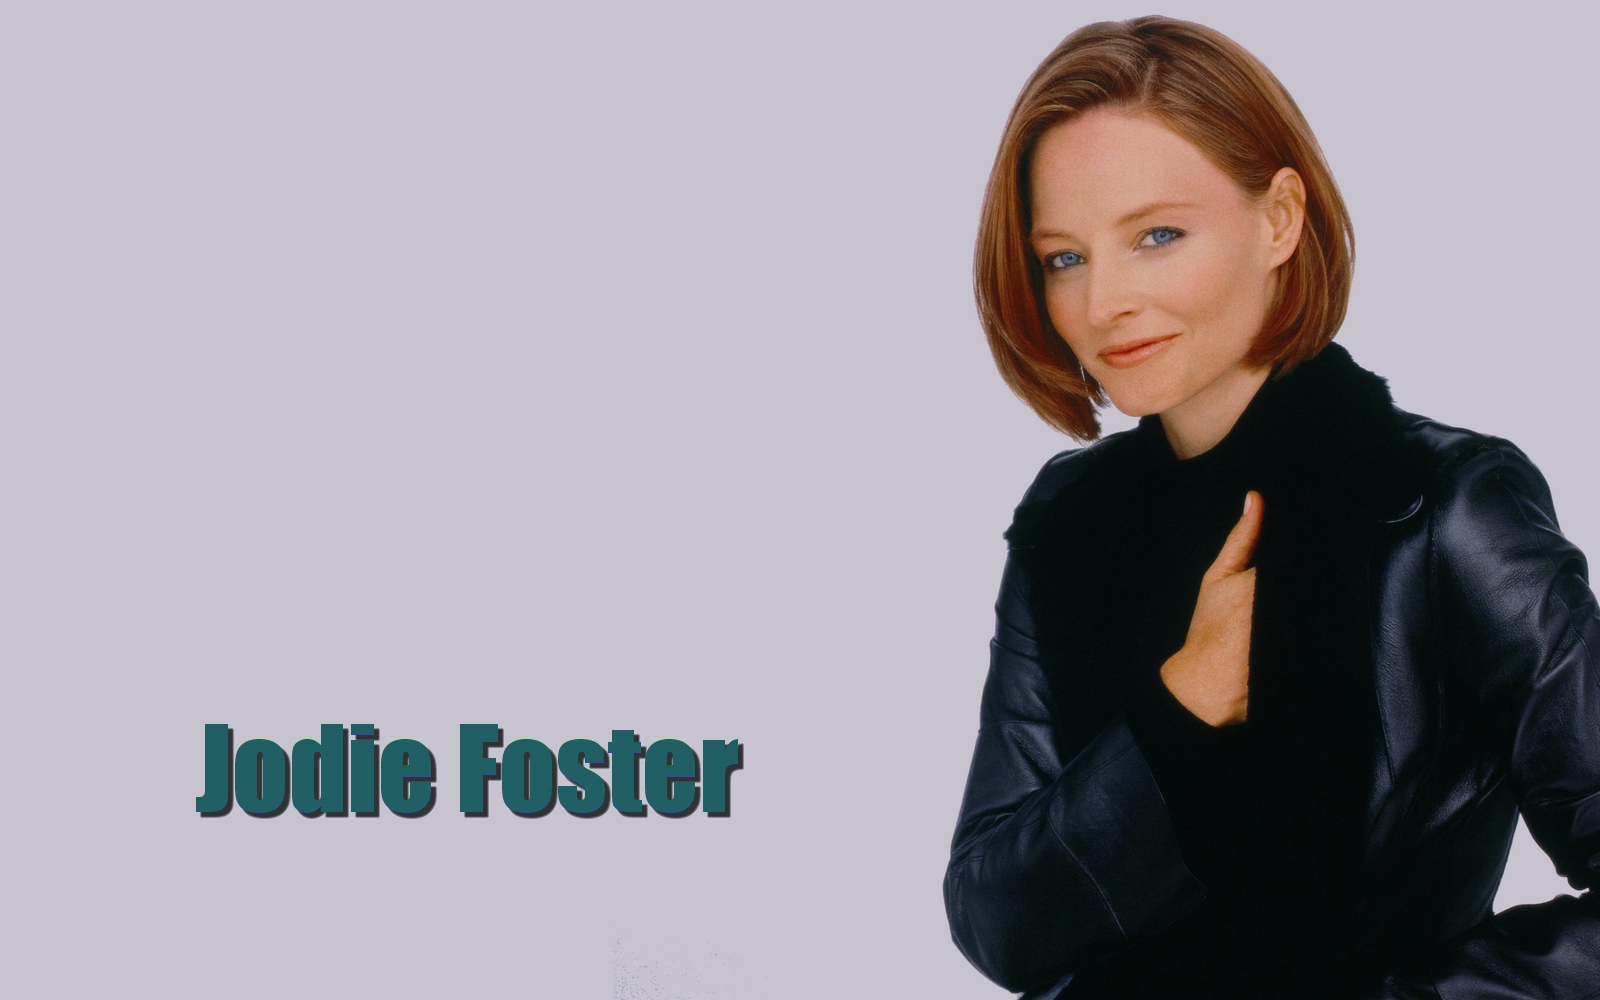 1600x1000 - Jodie Foster Wallpapers 2